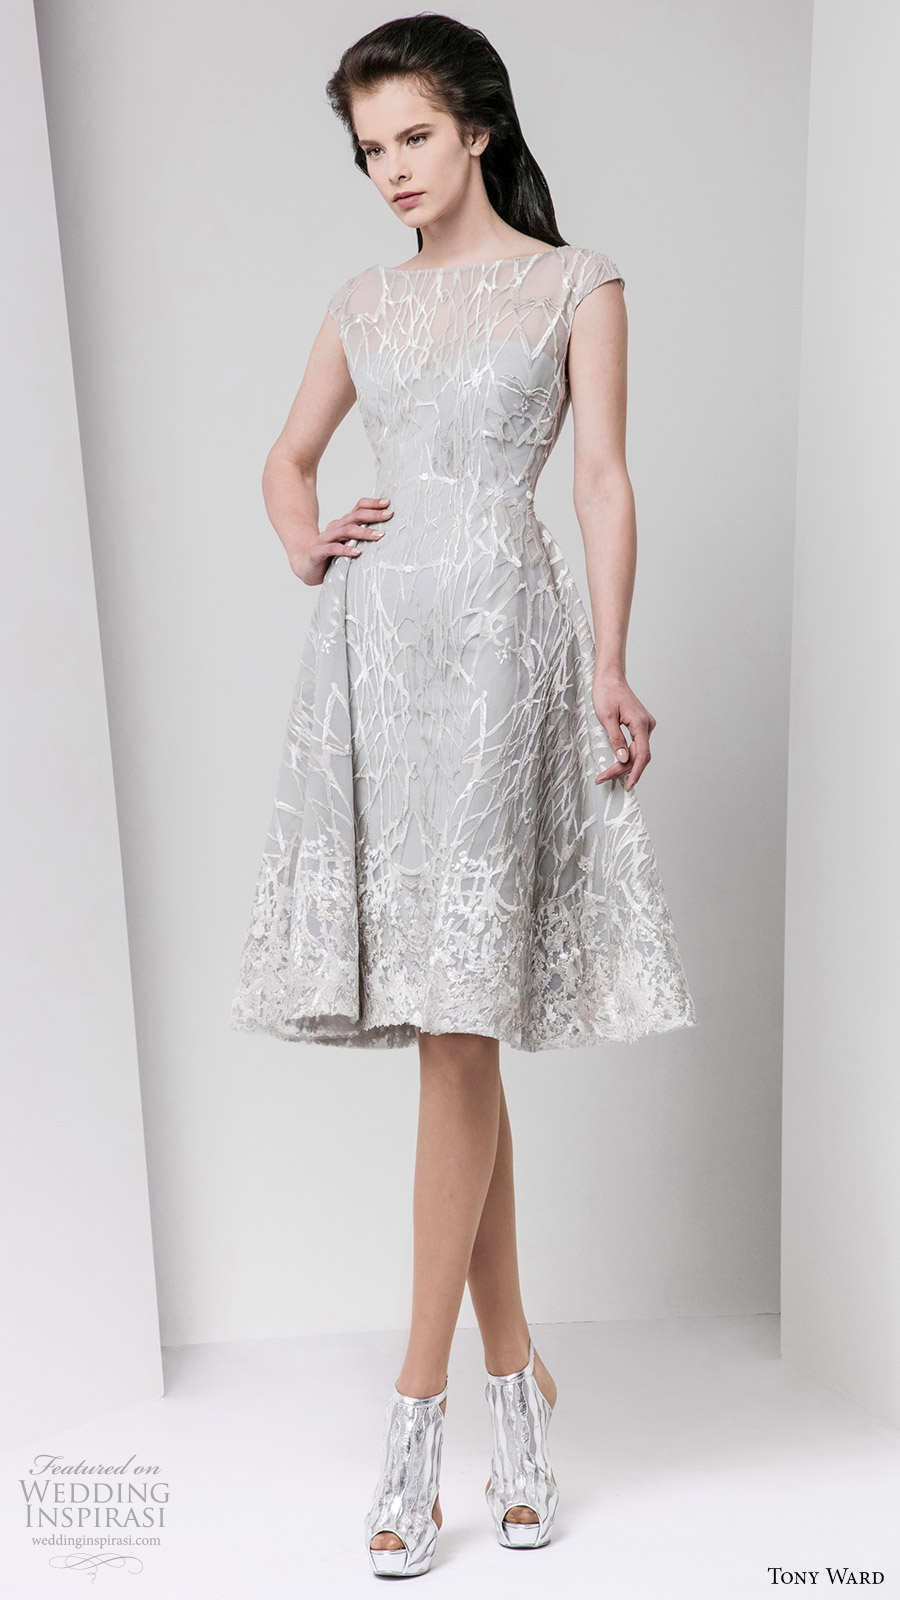 tony ward fall 2016 rtw cap sleeve bateau neck short evening dress gray wedding inspiration